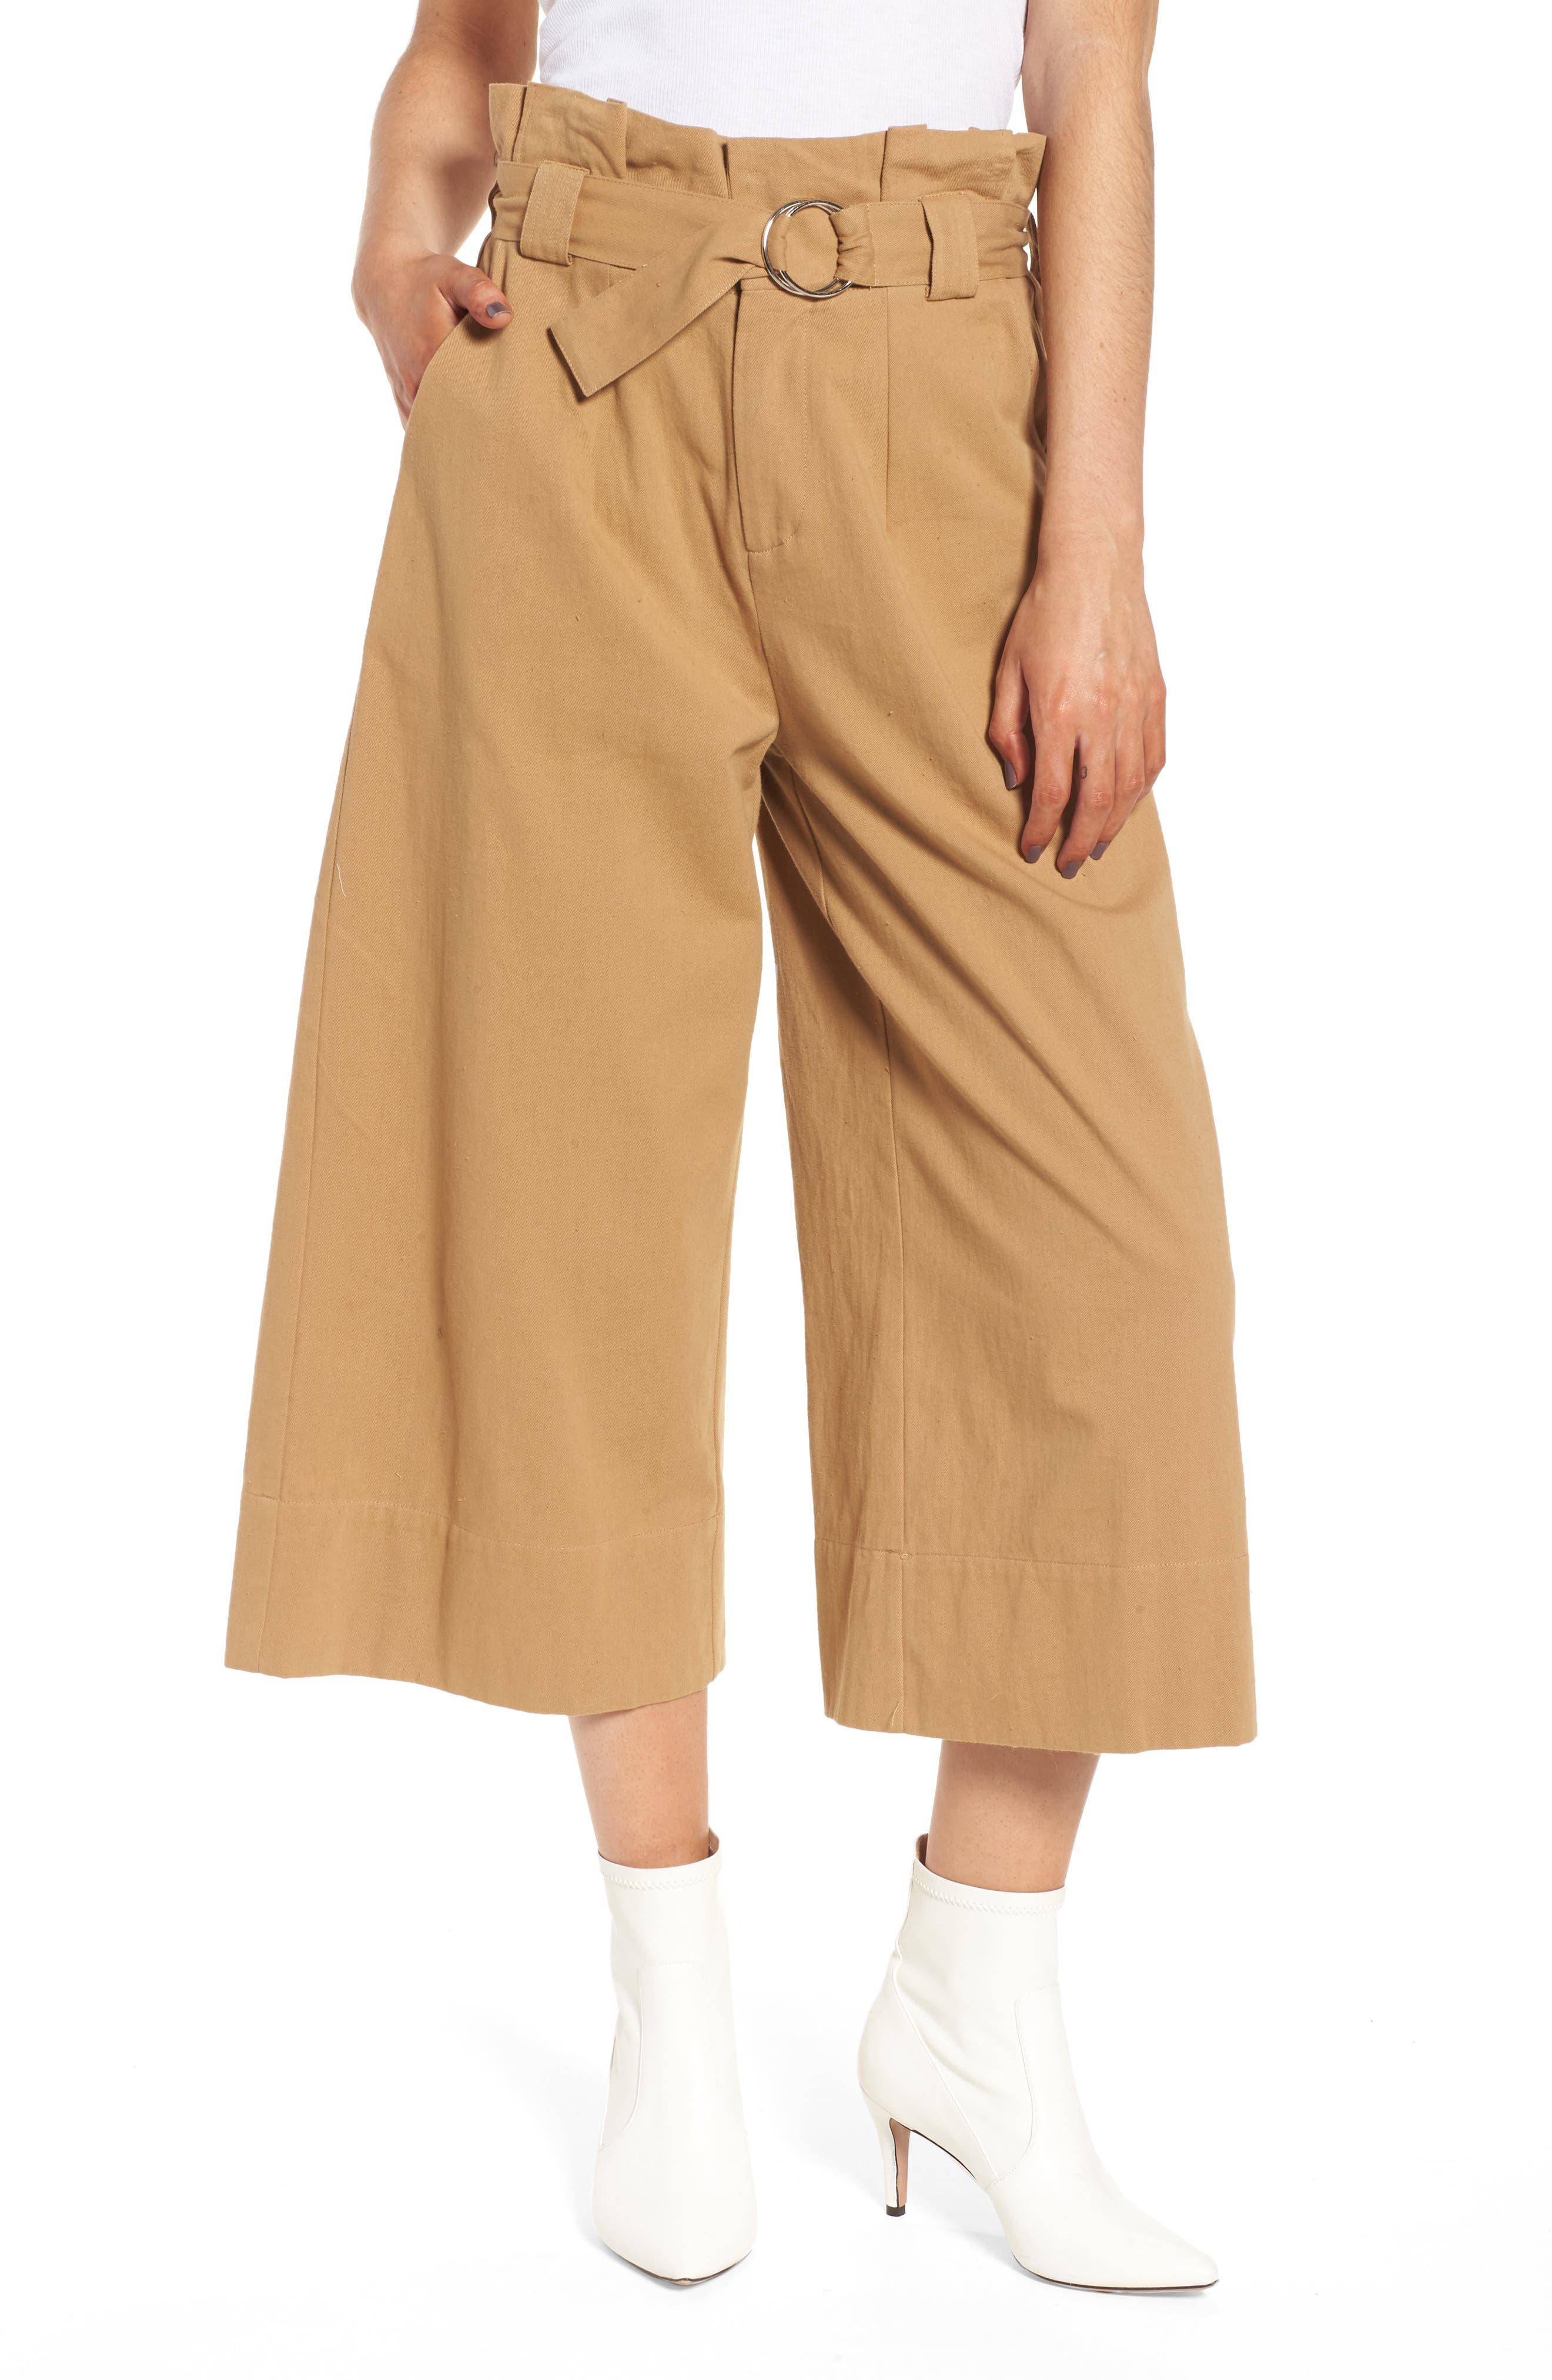 Main Image - Paperbag Waist Crop Pants